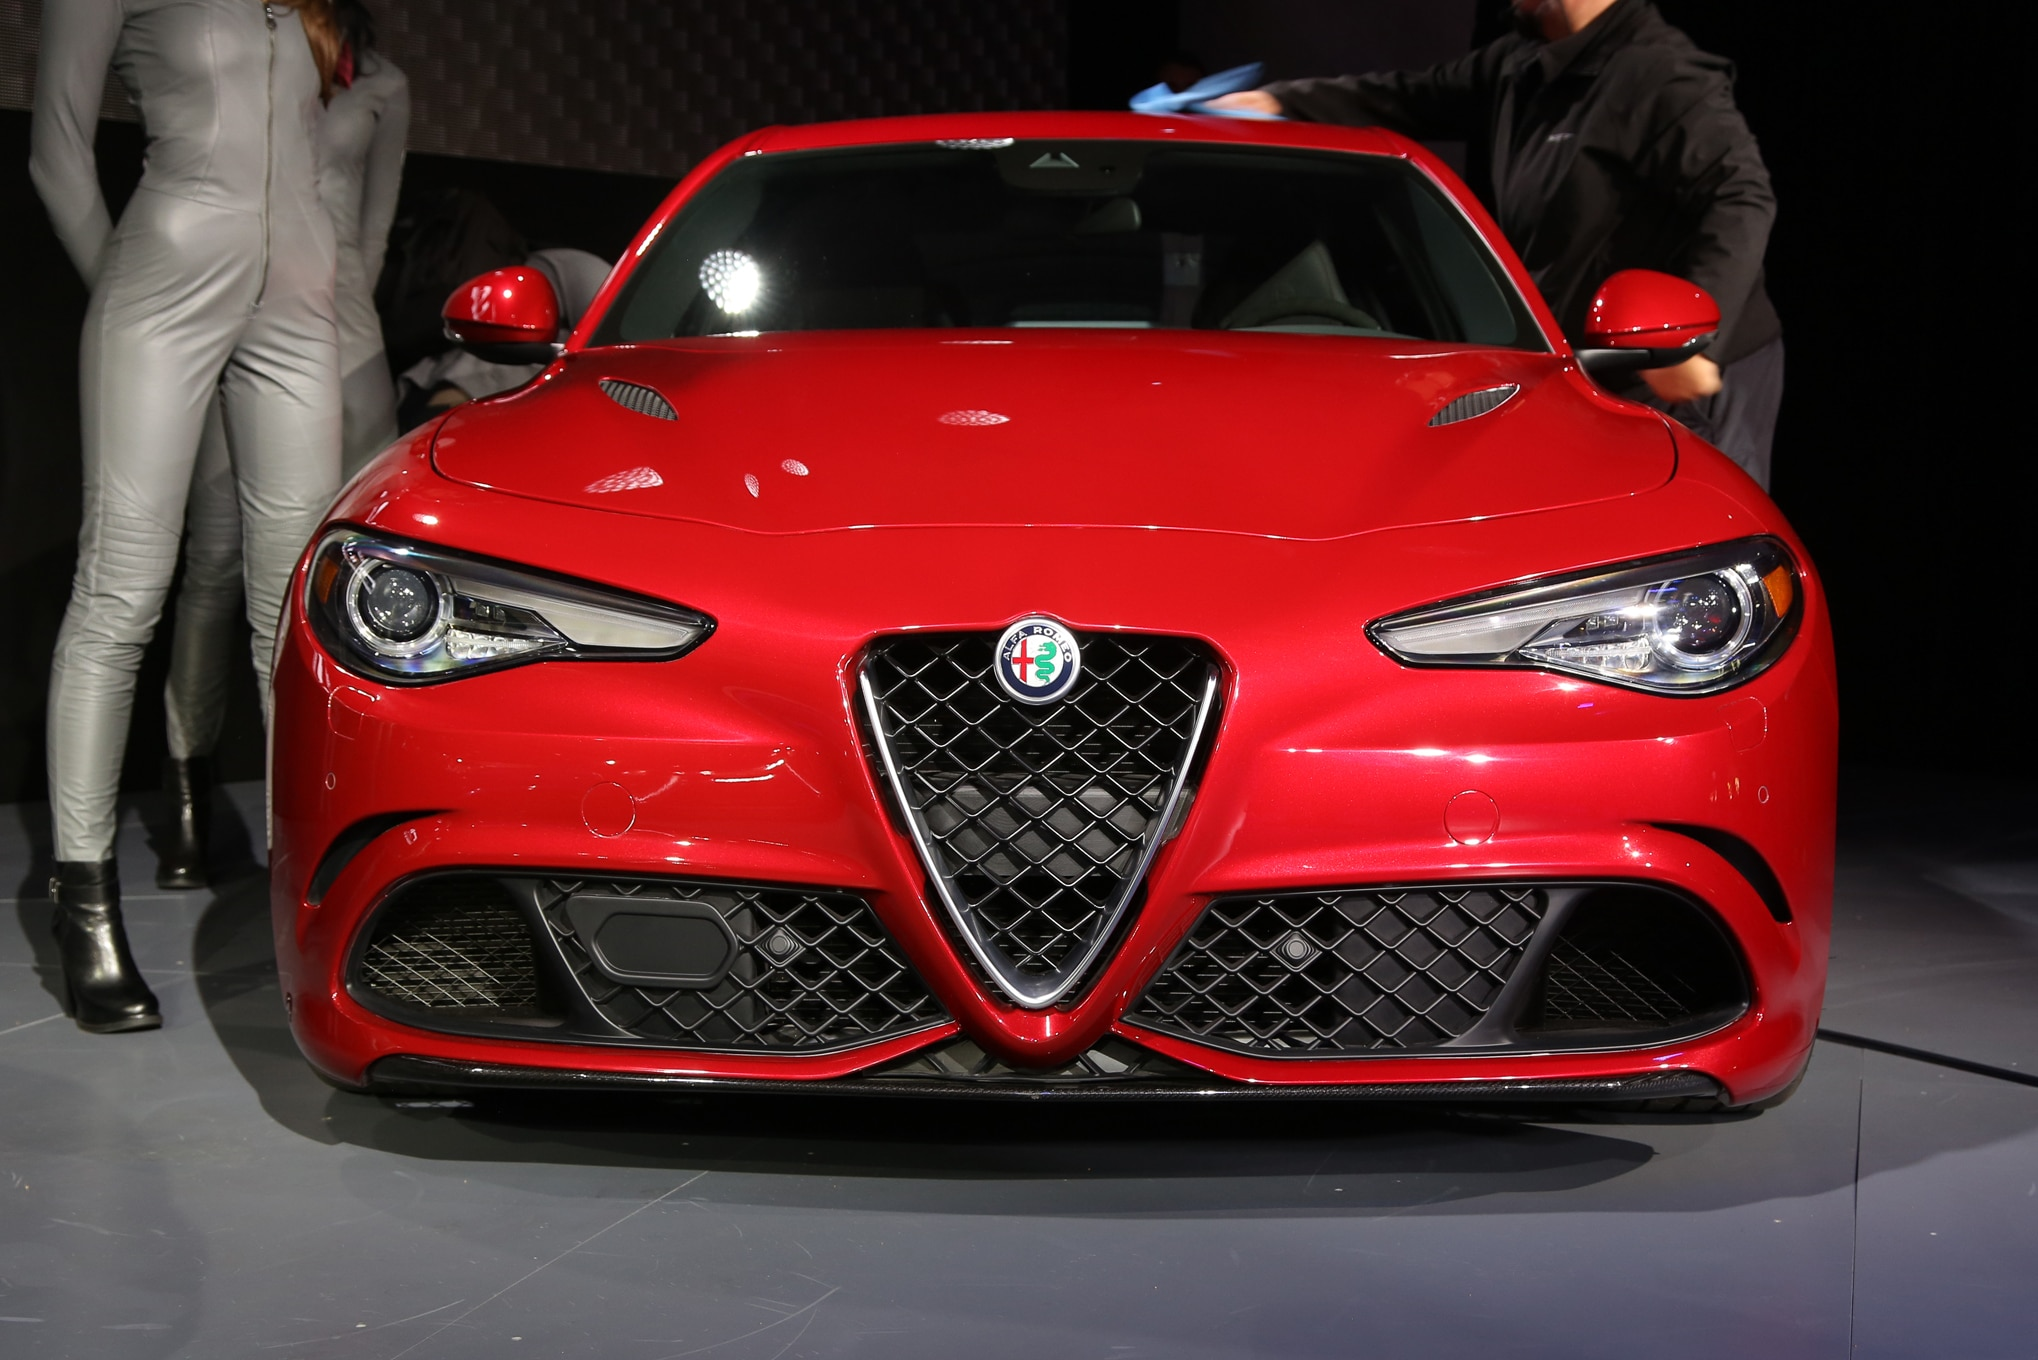 alfa romeo giulietta quadrifoglio verde review with Admire 360 Degree View 2017 Alfa Romeo Giulia Quadrifoglio on Alfa Romeo Giulia Ti Super 85c6f609c94e98c4 as well Alfa romeo giulietta cloverleaf review furthermore Photos likewise Alfa Romeo Giulia 2017 in addition Showthread.